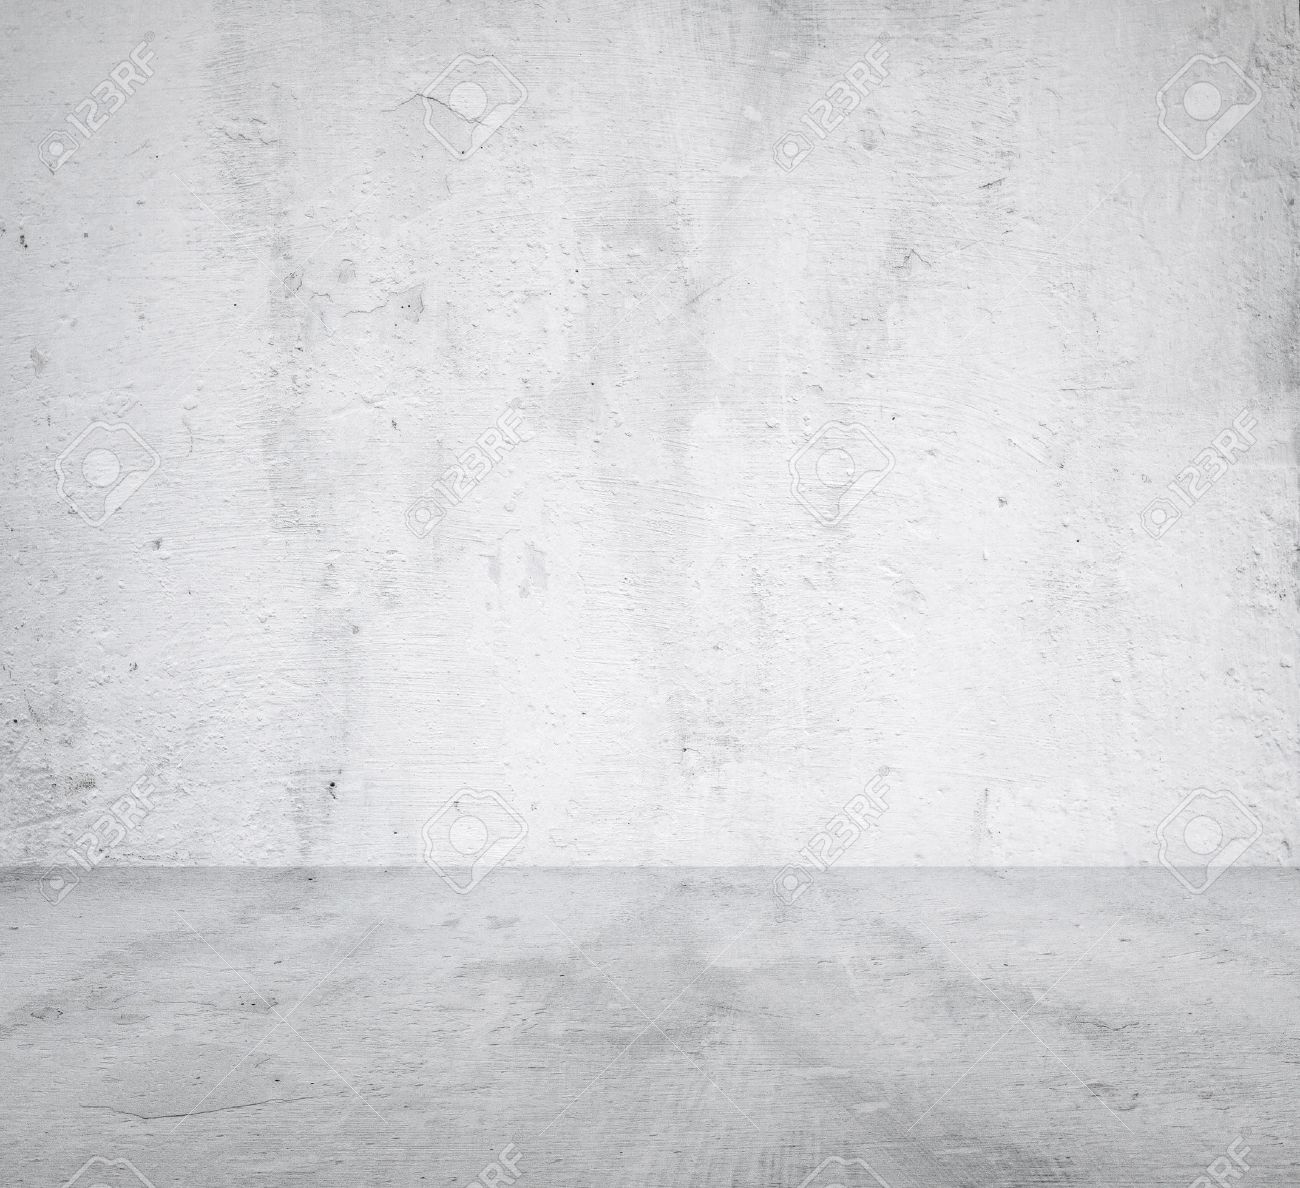 empty room with concrete wall, grey background - 25864713